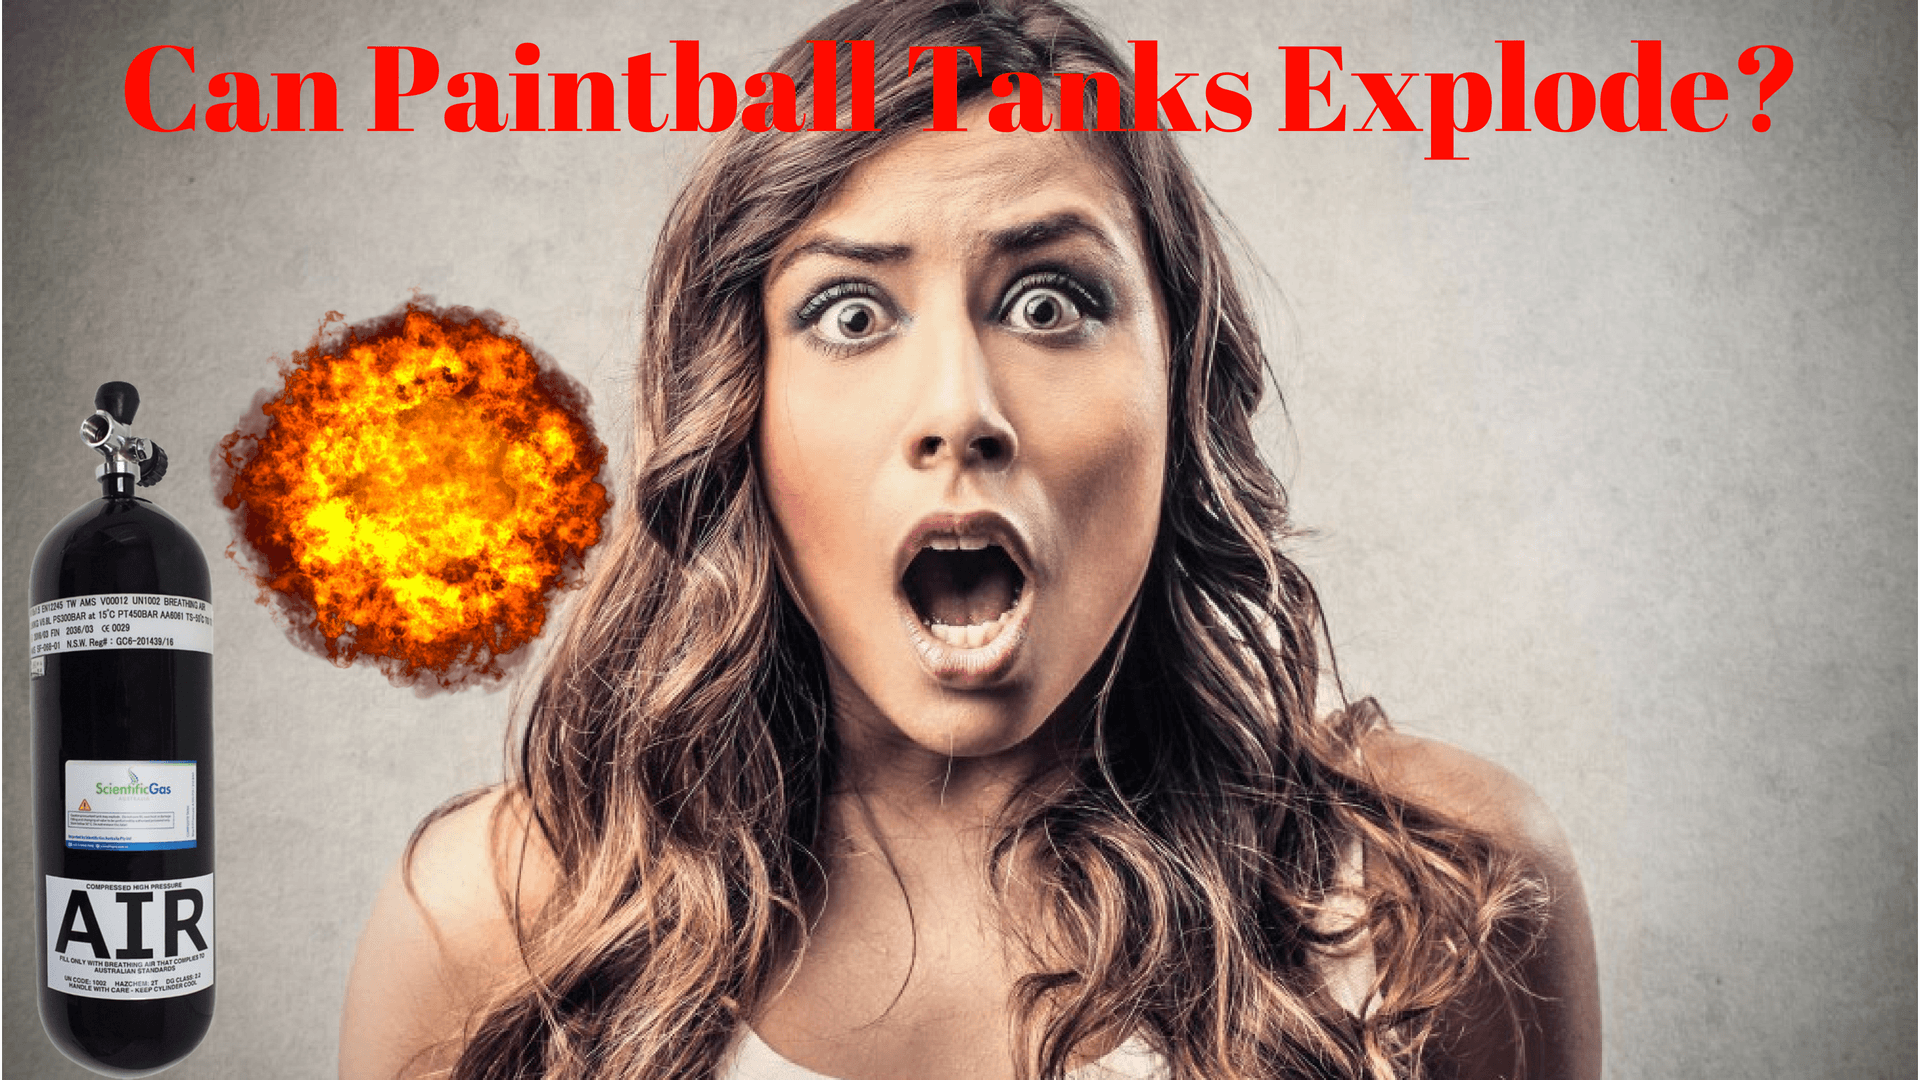 Can Paintball Tanks Explode